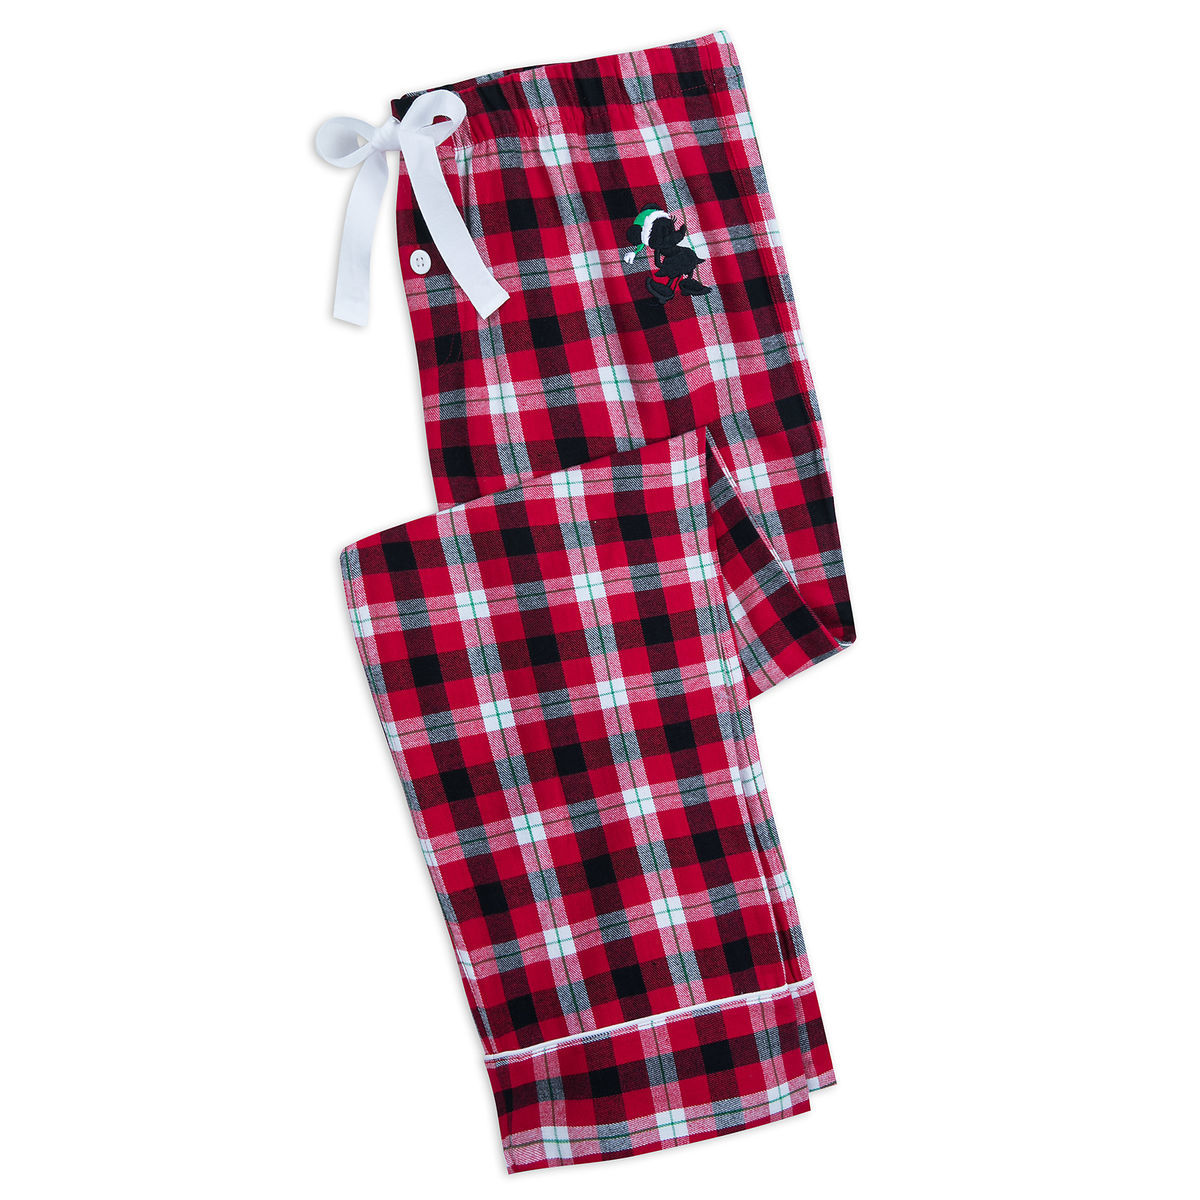 Minnie Mouse Holiday Pajama Pants For Women Shopdisney